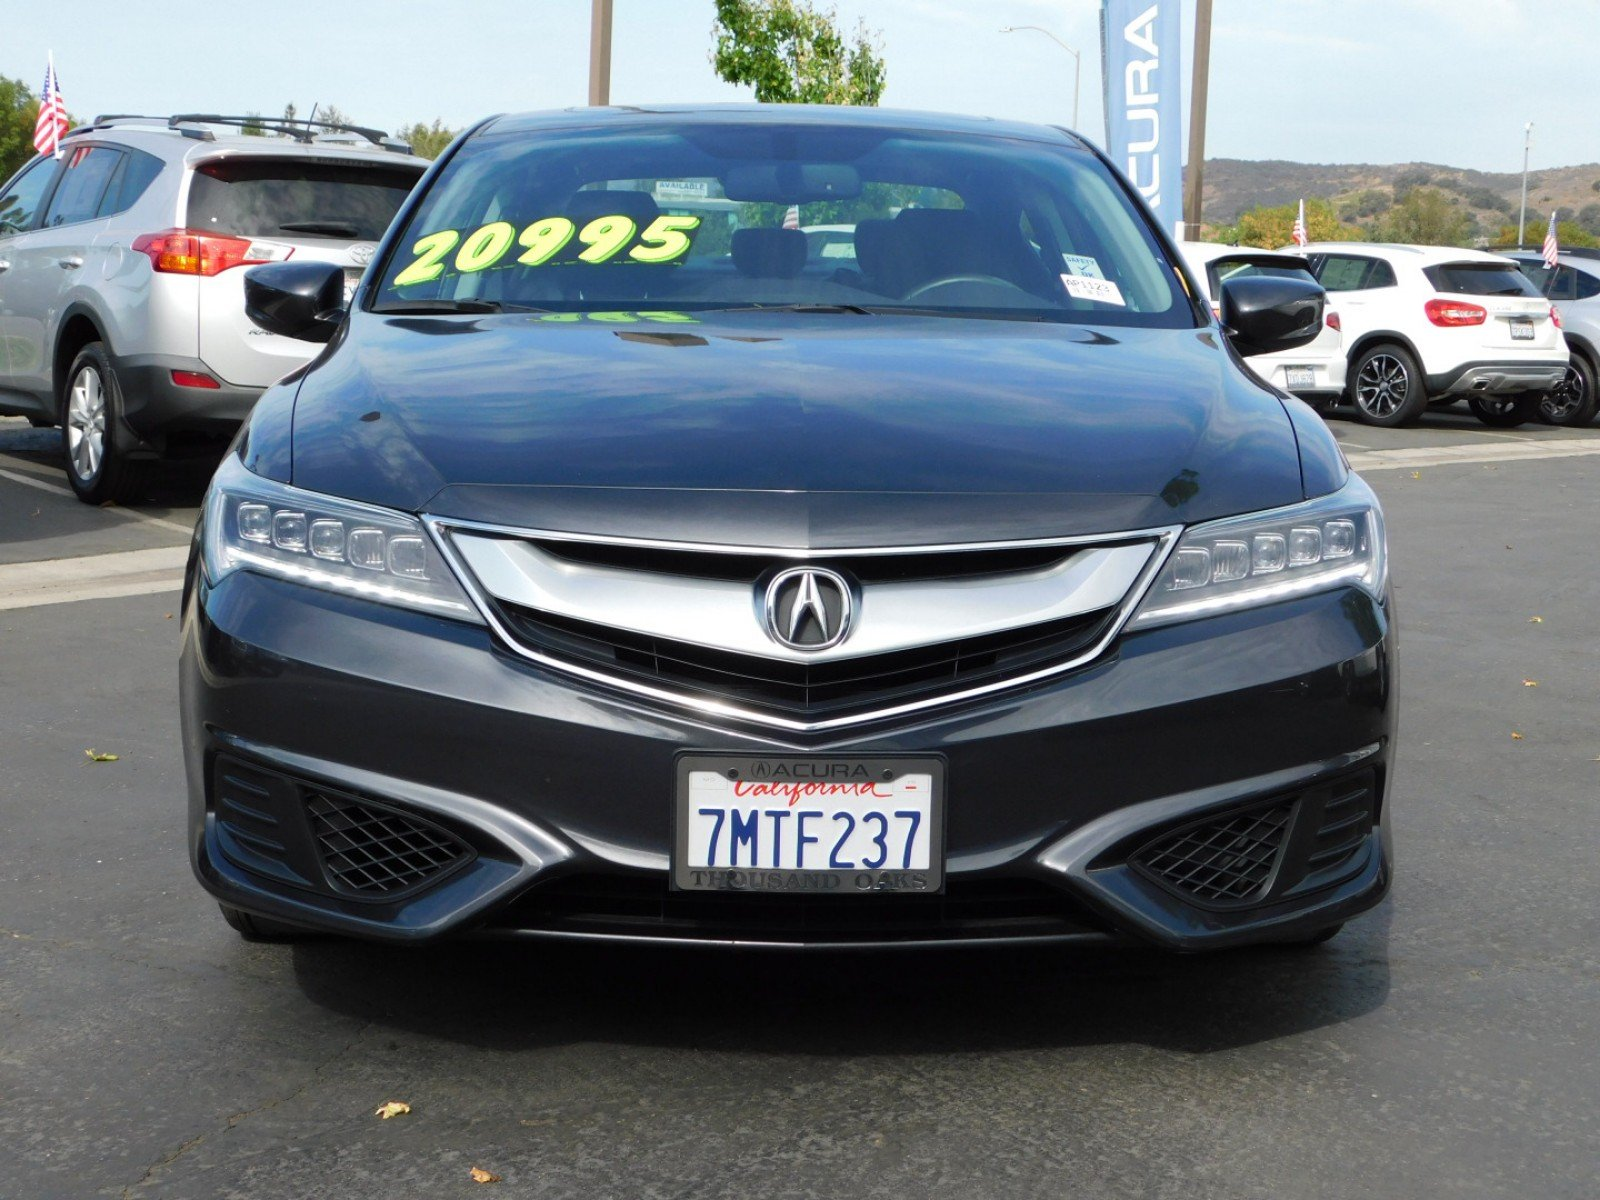 Pre Owned 2016 Acura ILX w Premium Pkg 4dr Car in Thousand Oaks